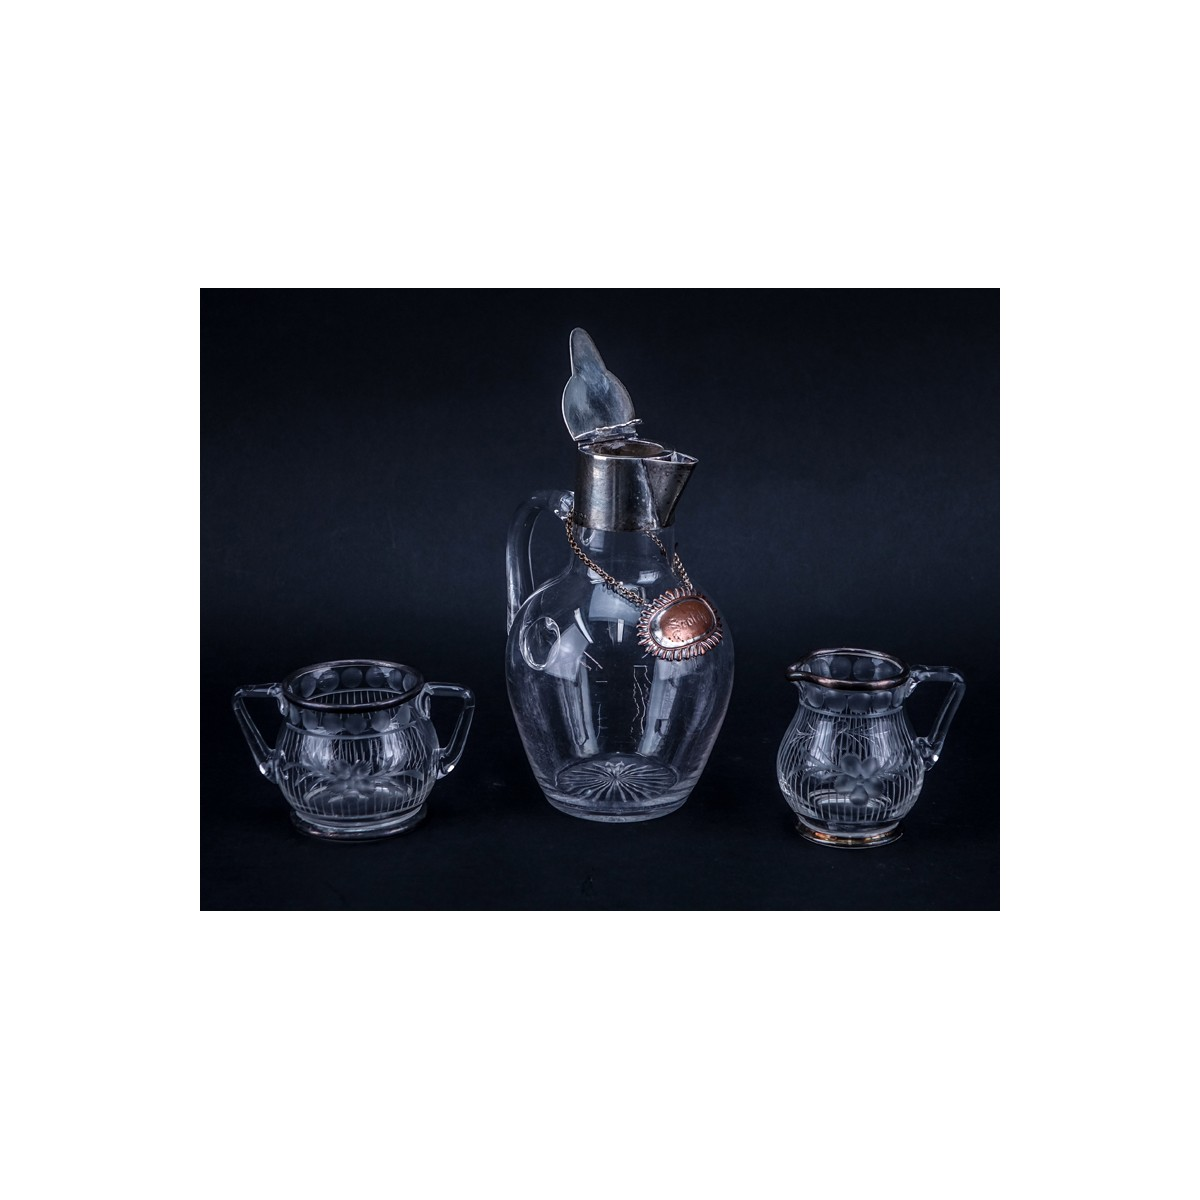 Grouping of Six (6) Vintage Tableware. Includes: Two crystal decanters/cruet bottles, glass pitcher